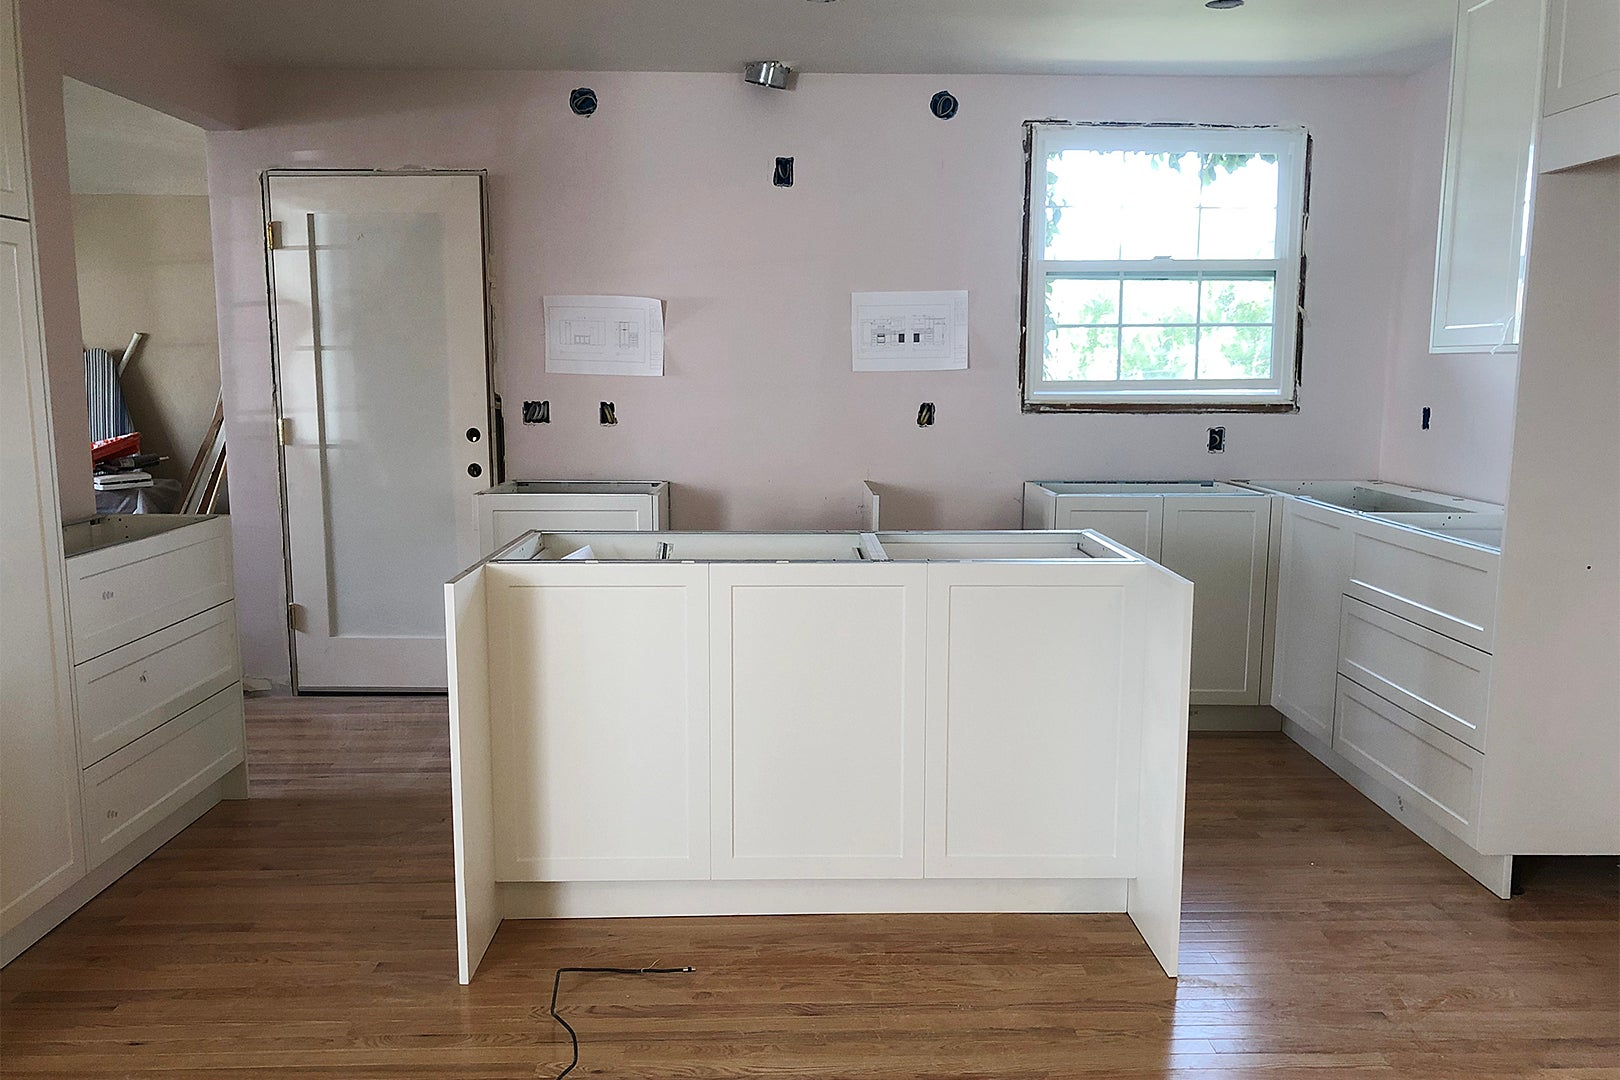 cabinets being installed